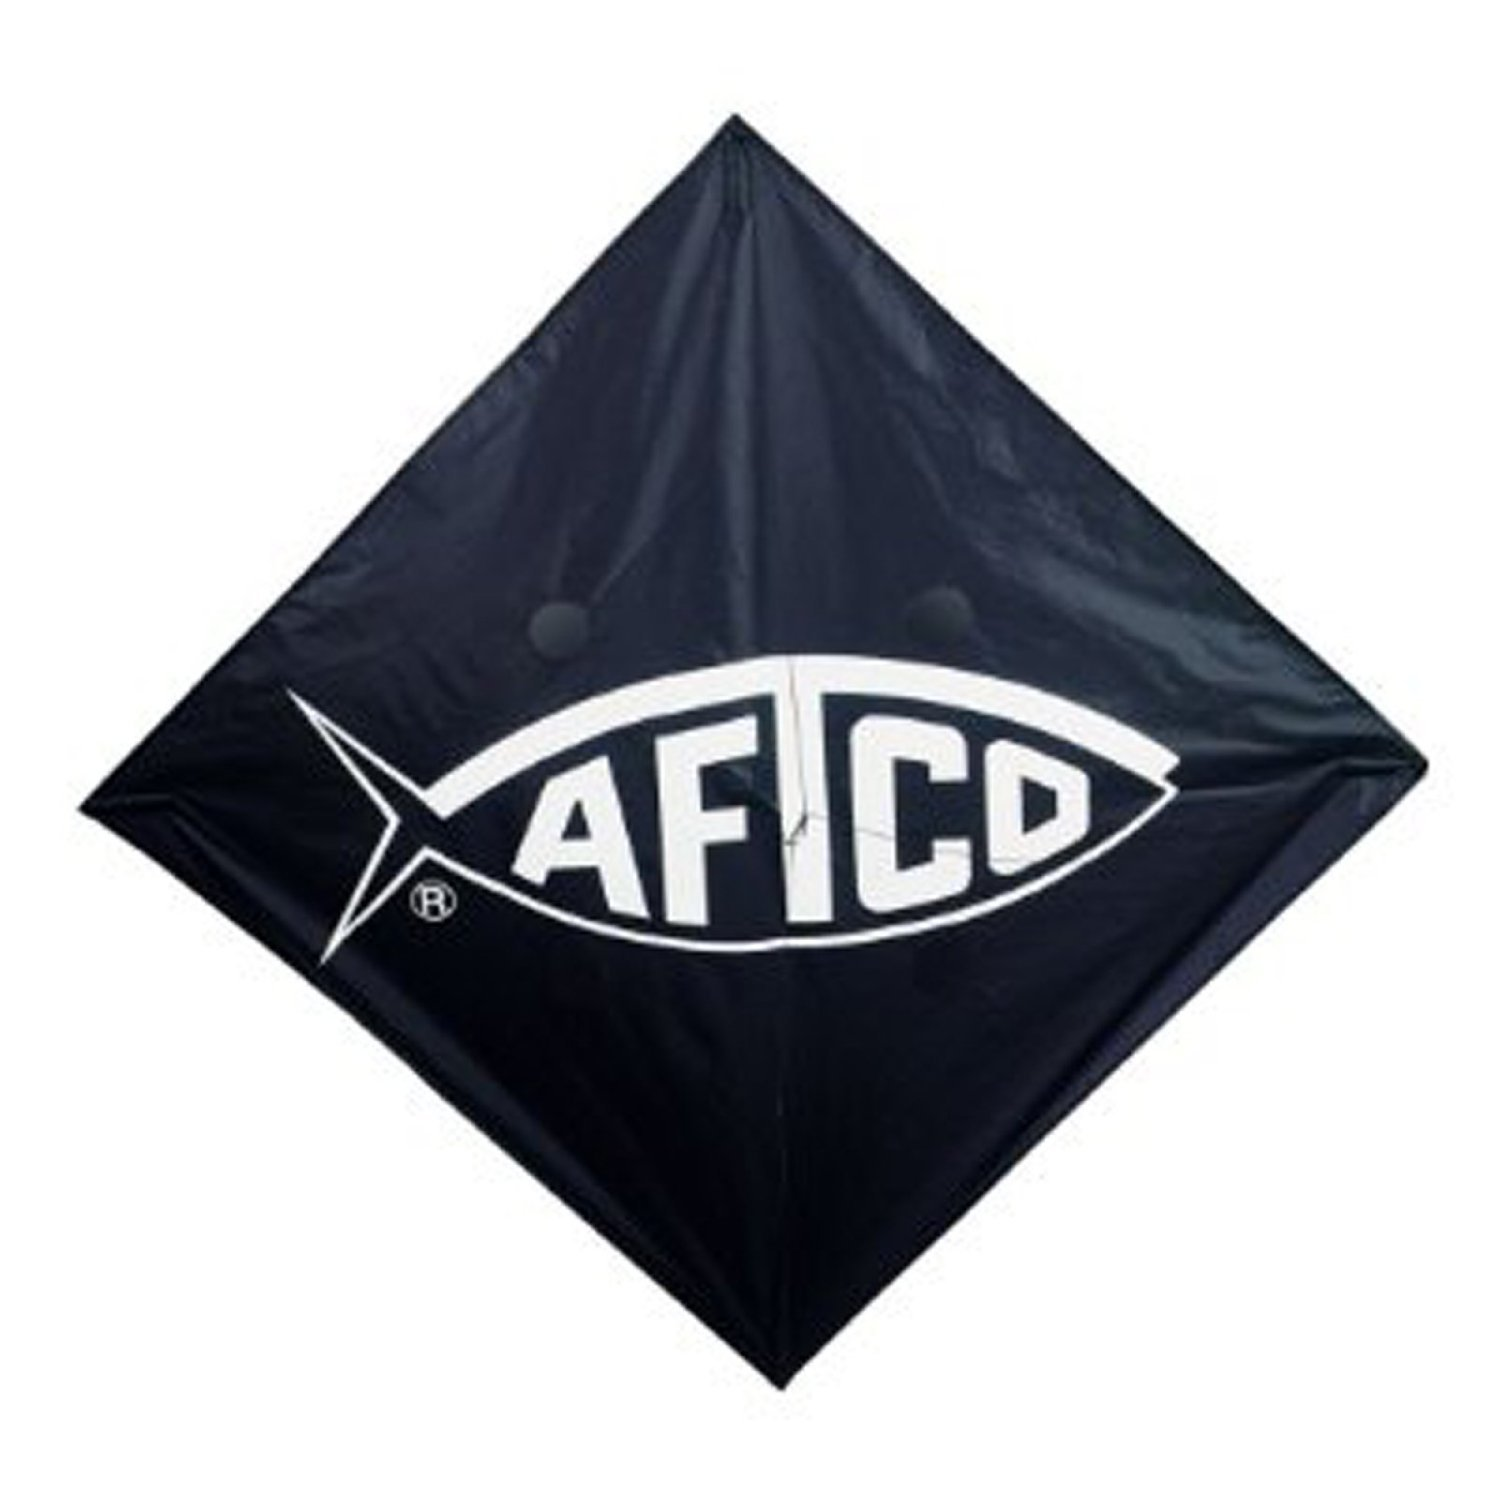 AFTCO KITEKIT1B All-Weather Fishing Kit for Light and Medium Wind with Spars, Black by AFTCO